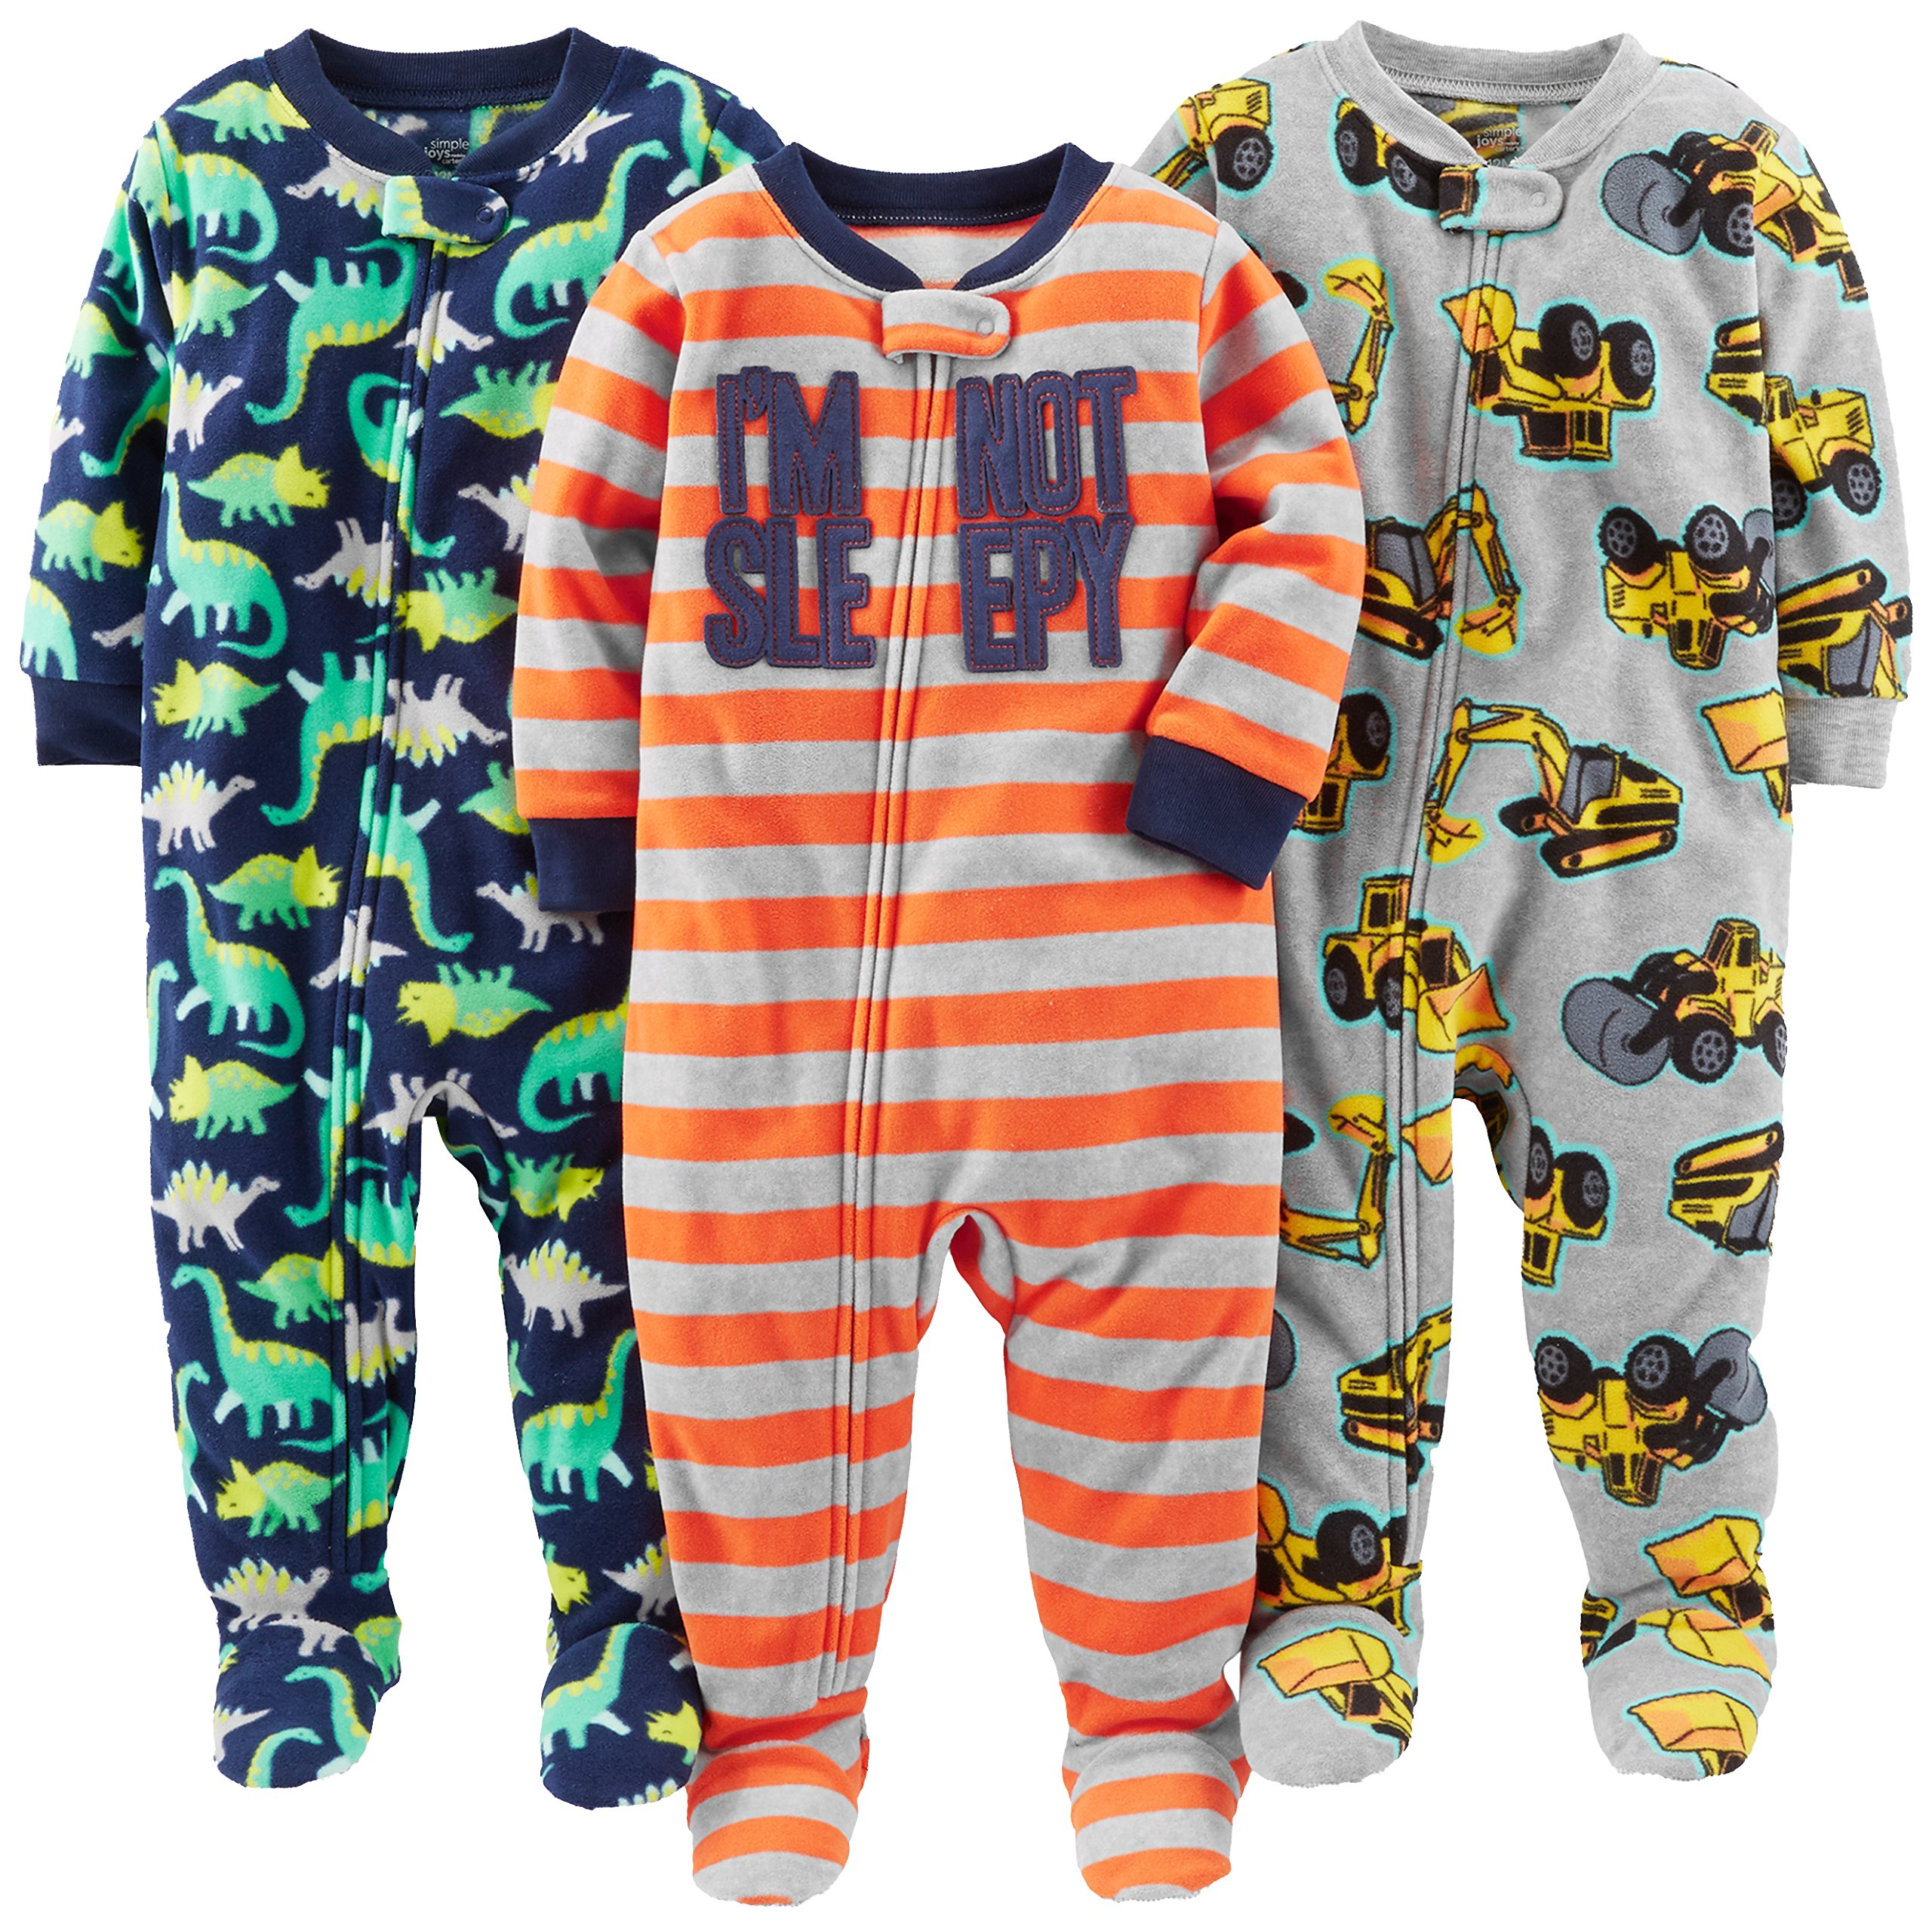 6918d4f63824 Galleon - Simple Joys By Carter s Baby Boys  Toddler 3-Pack Loose ...